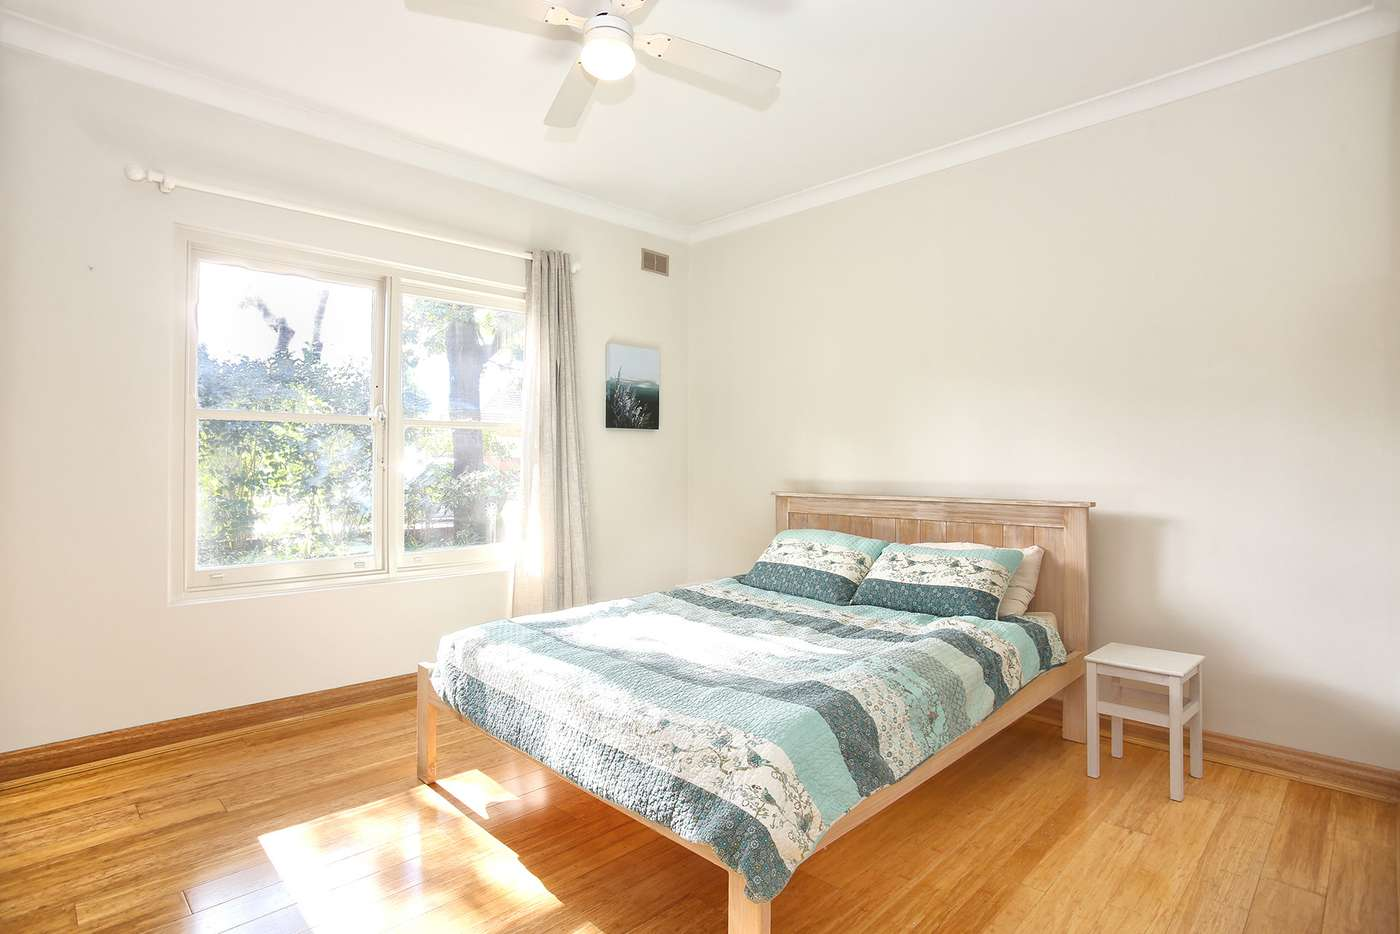 Sixth view of Homely unit listing, 1/9 Lovett Street, Manly Vale NSW 2093